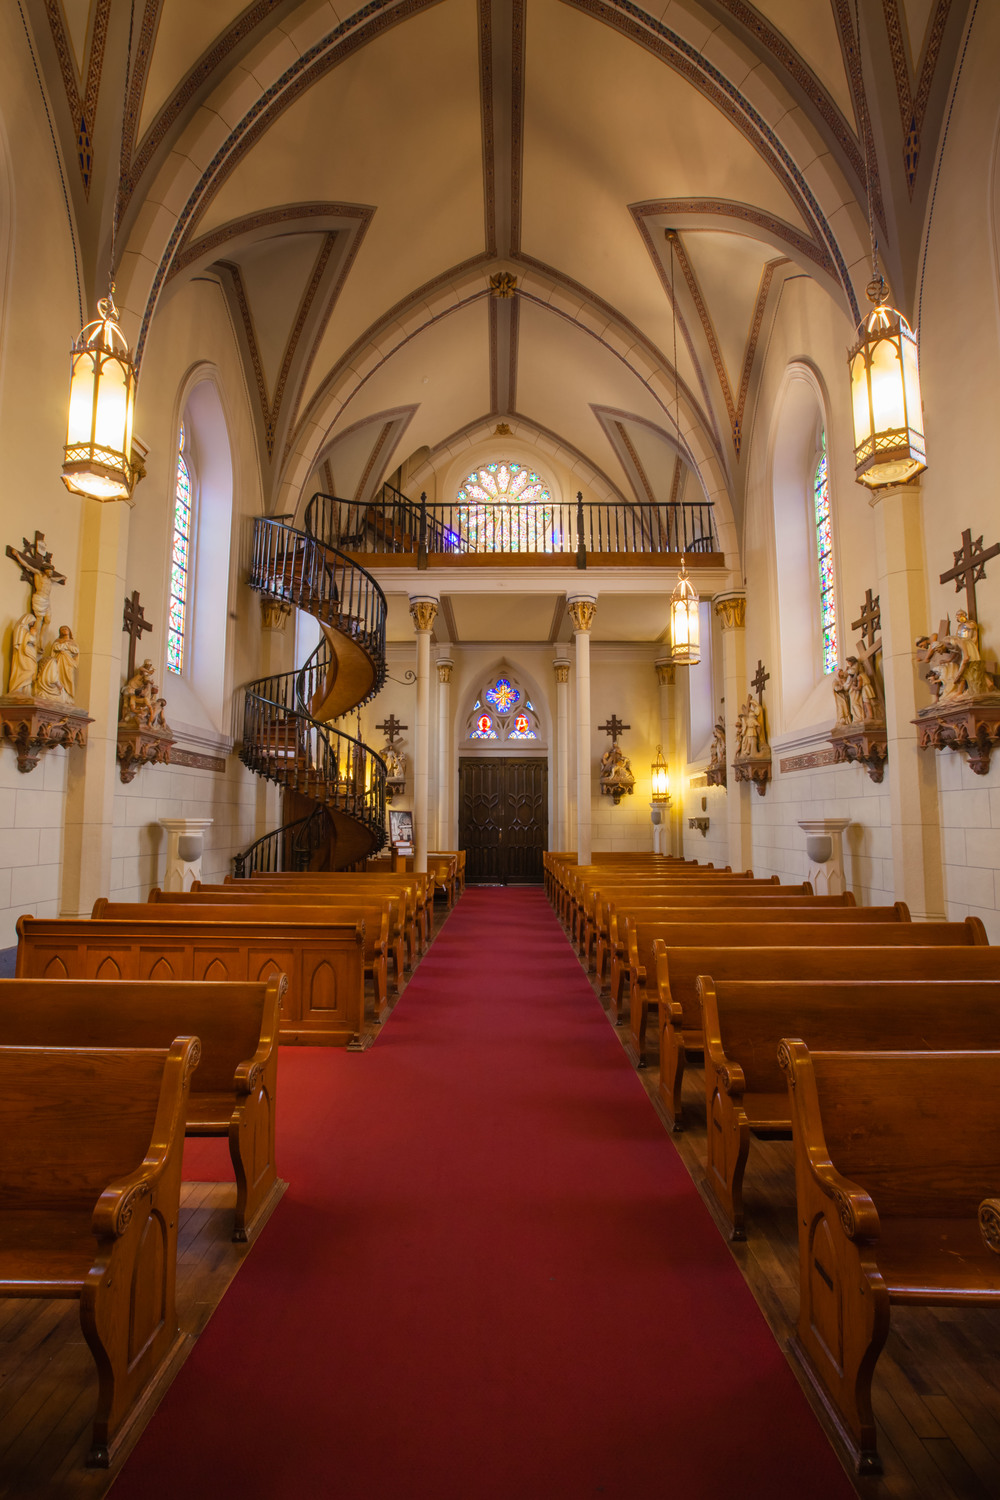 The Loretto Chapel in Santa Fe - the spiral stairs were built without nails or an apparent center support.